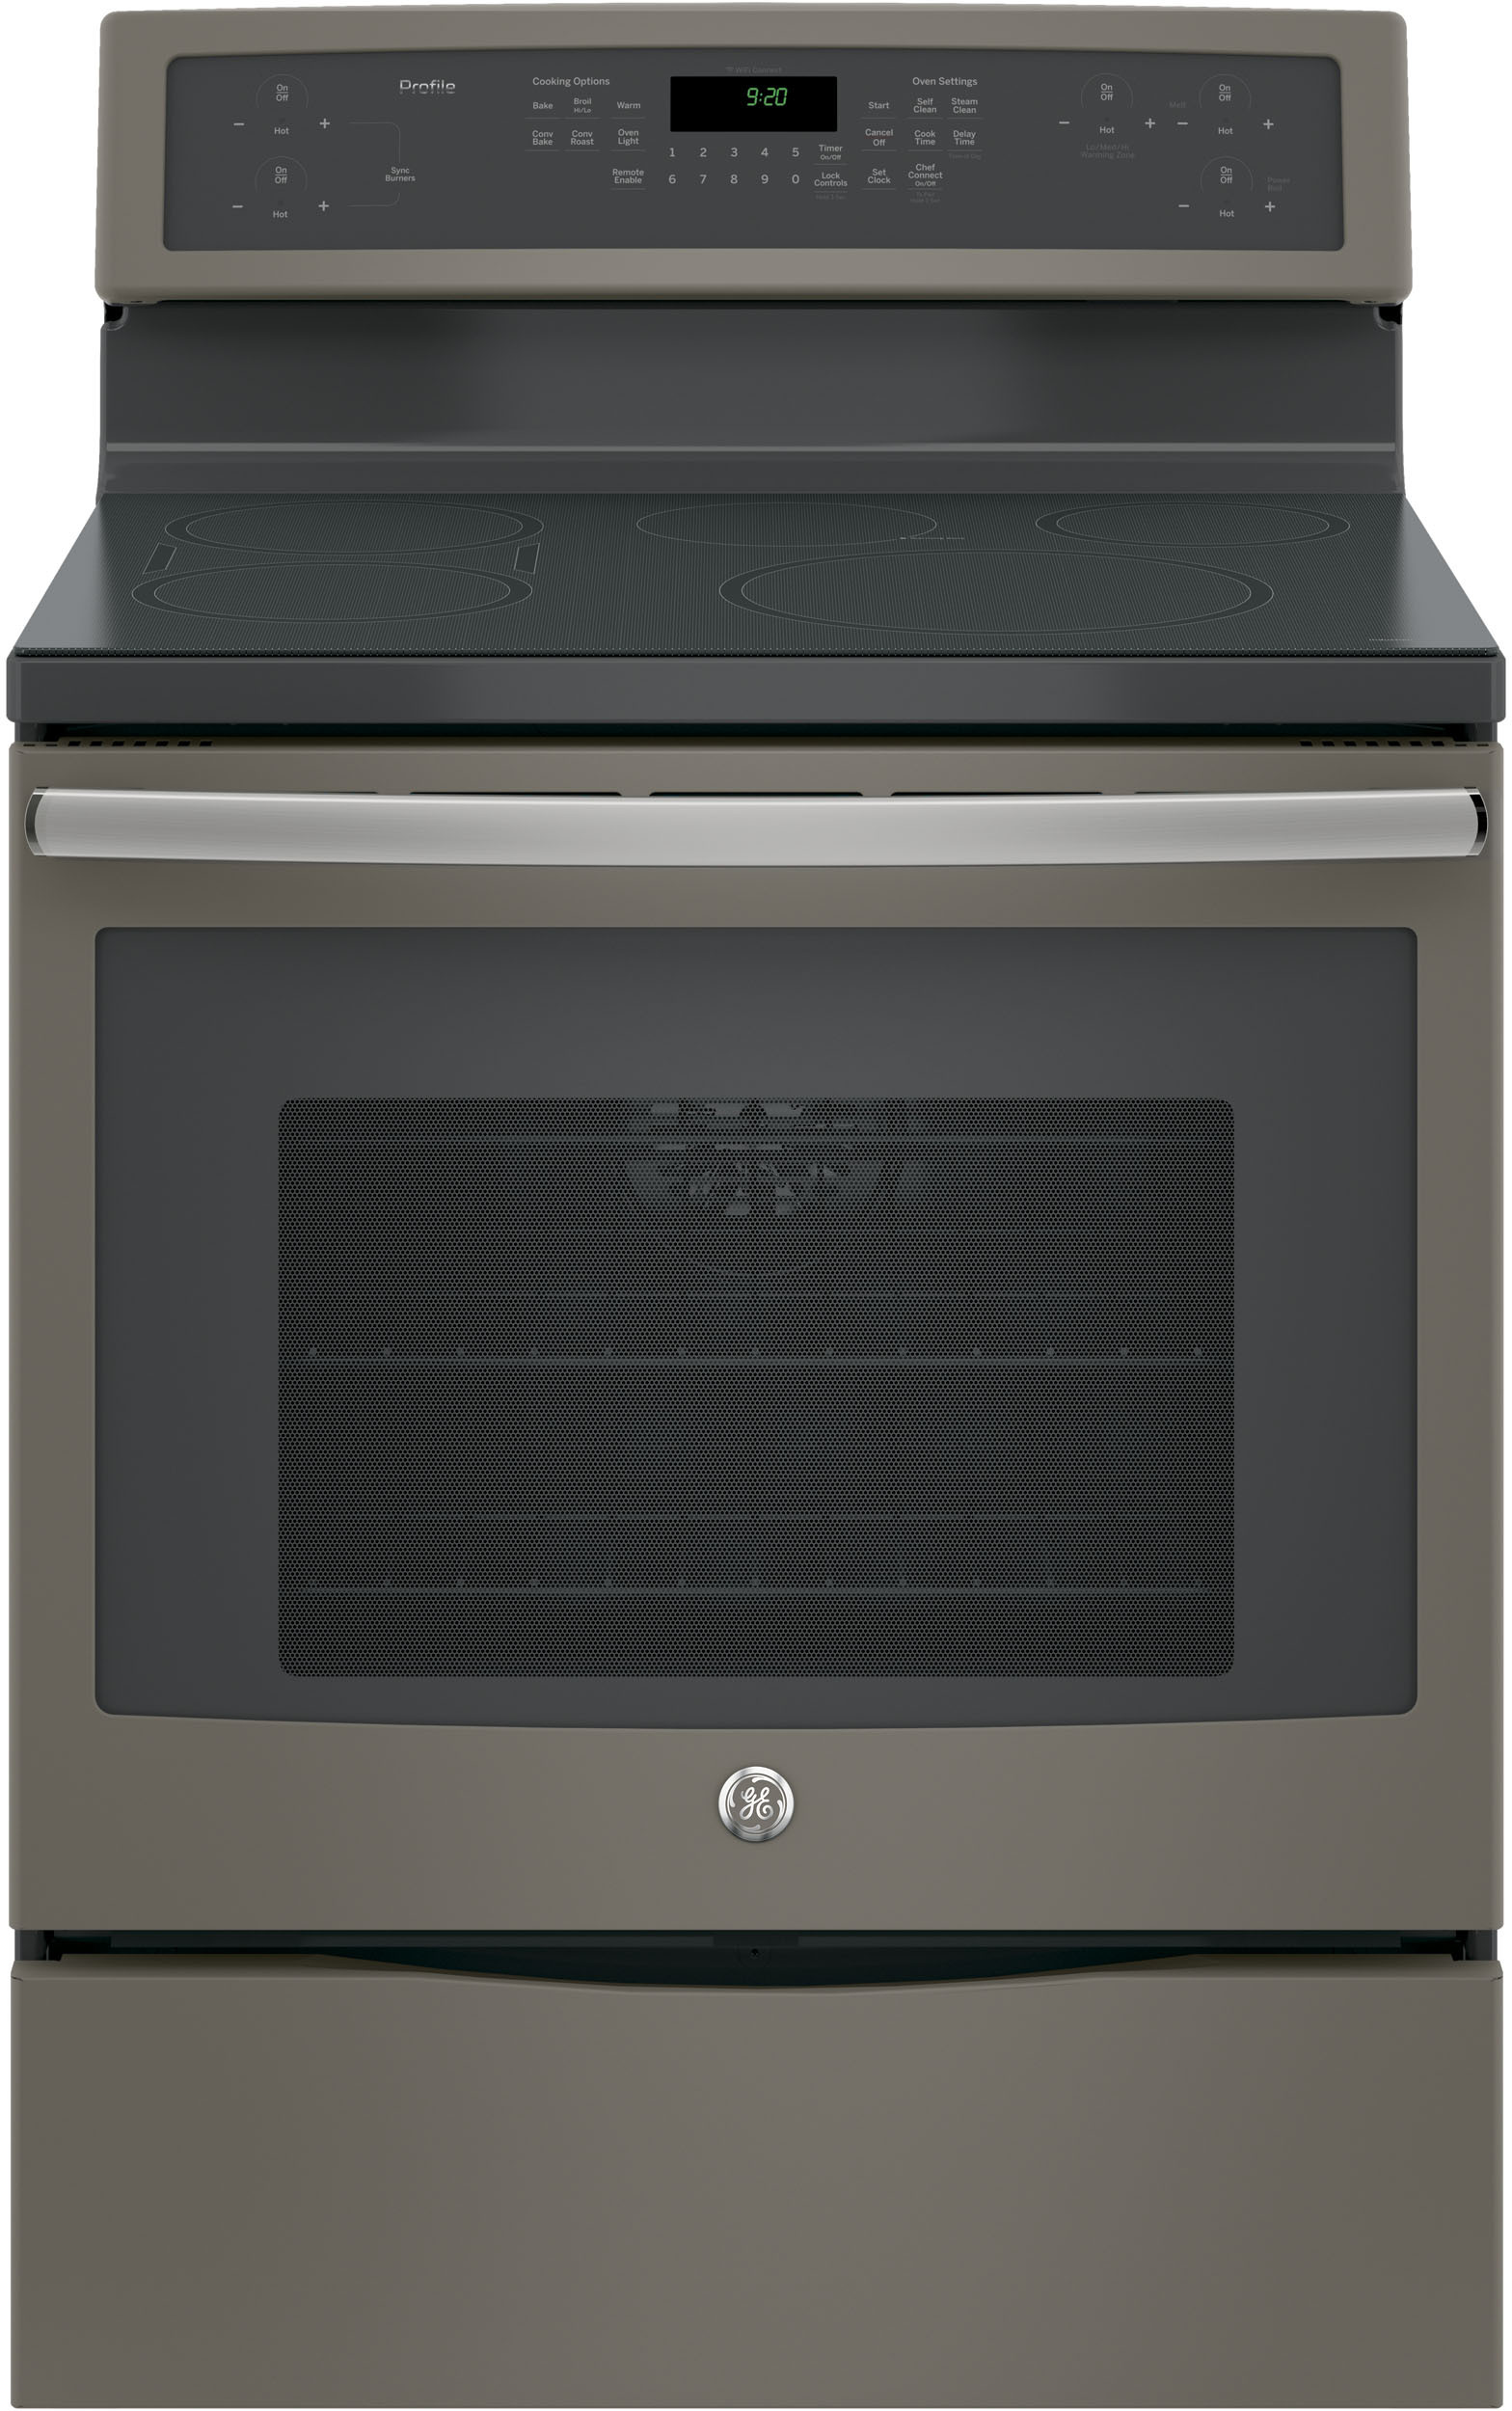 30 inch induction range fisher paykel ge phb920ejes 30 inch freestanding induction range with true convection wifi connect chef synchronized bridge element warming zone